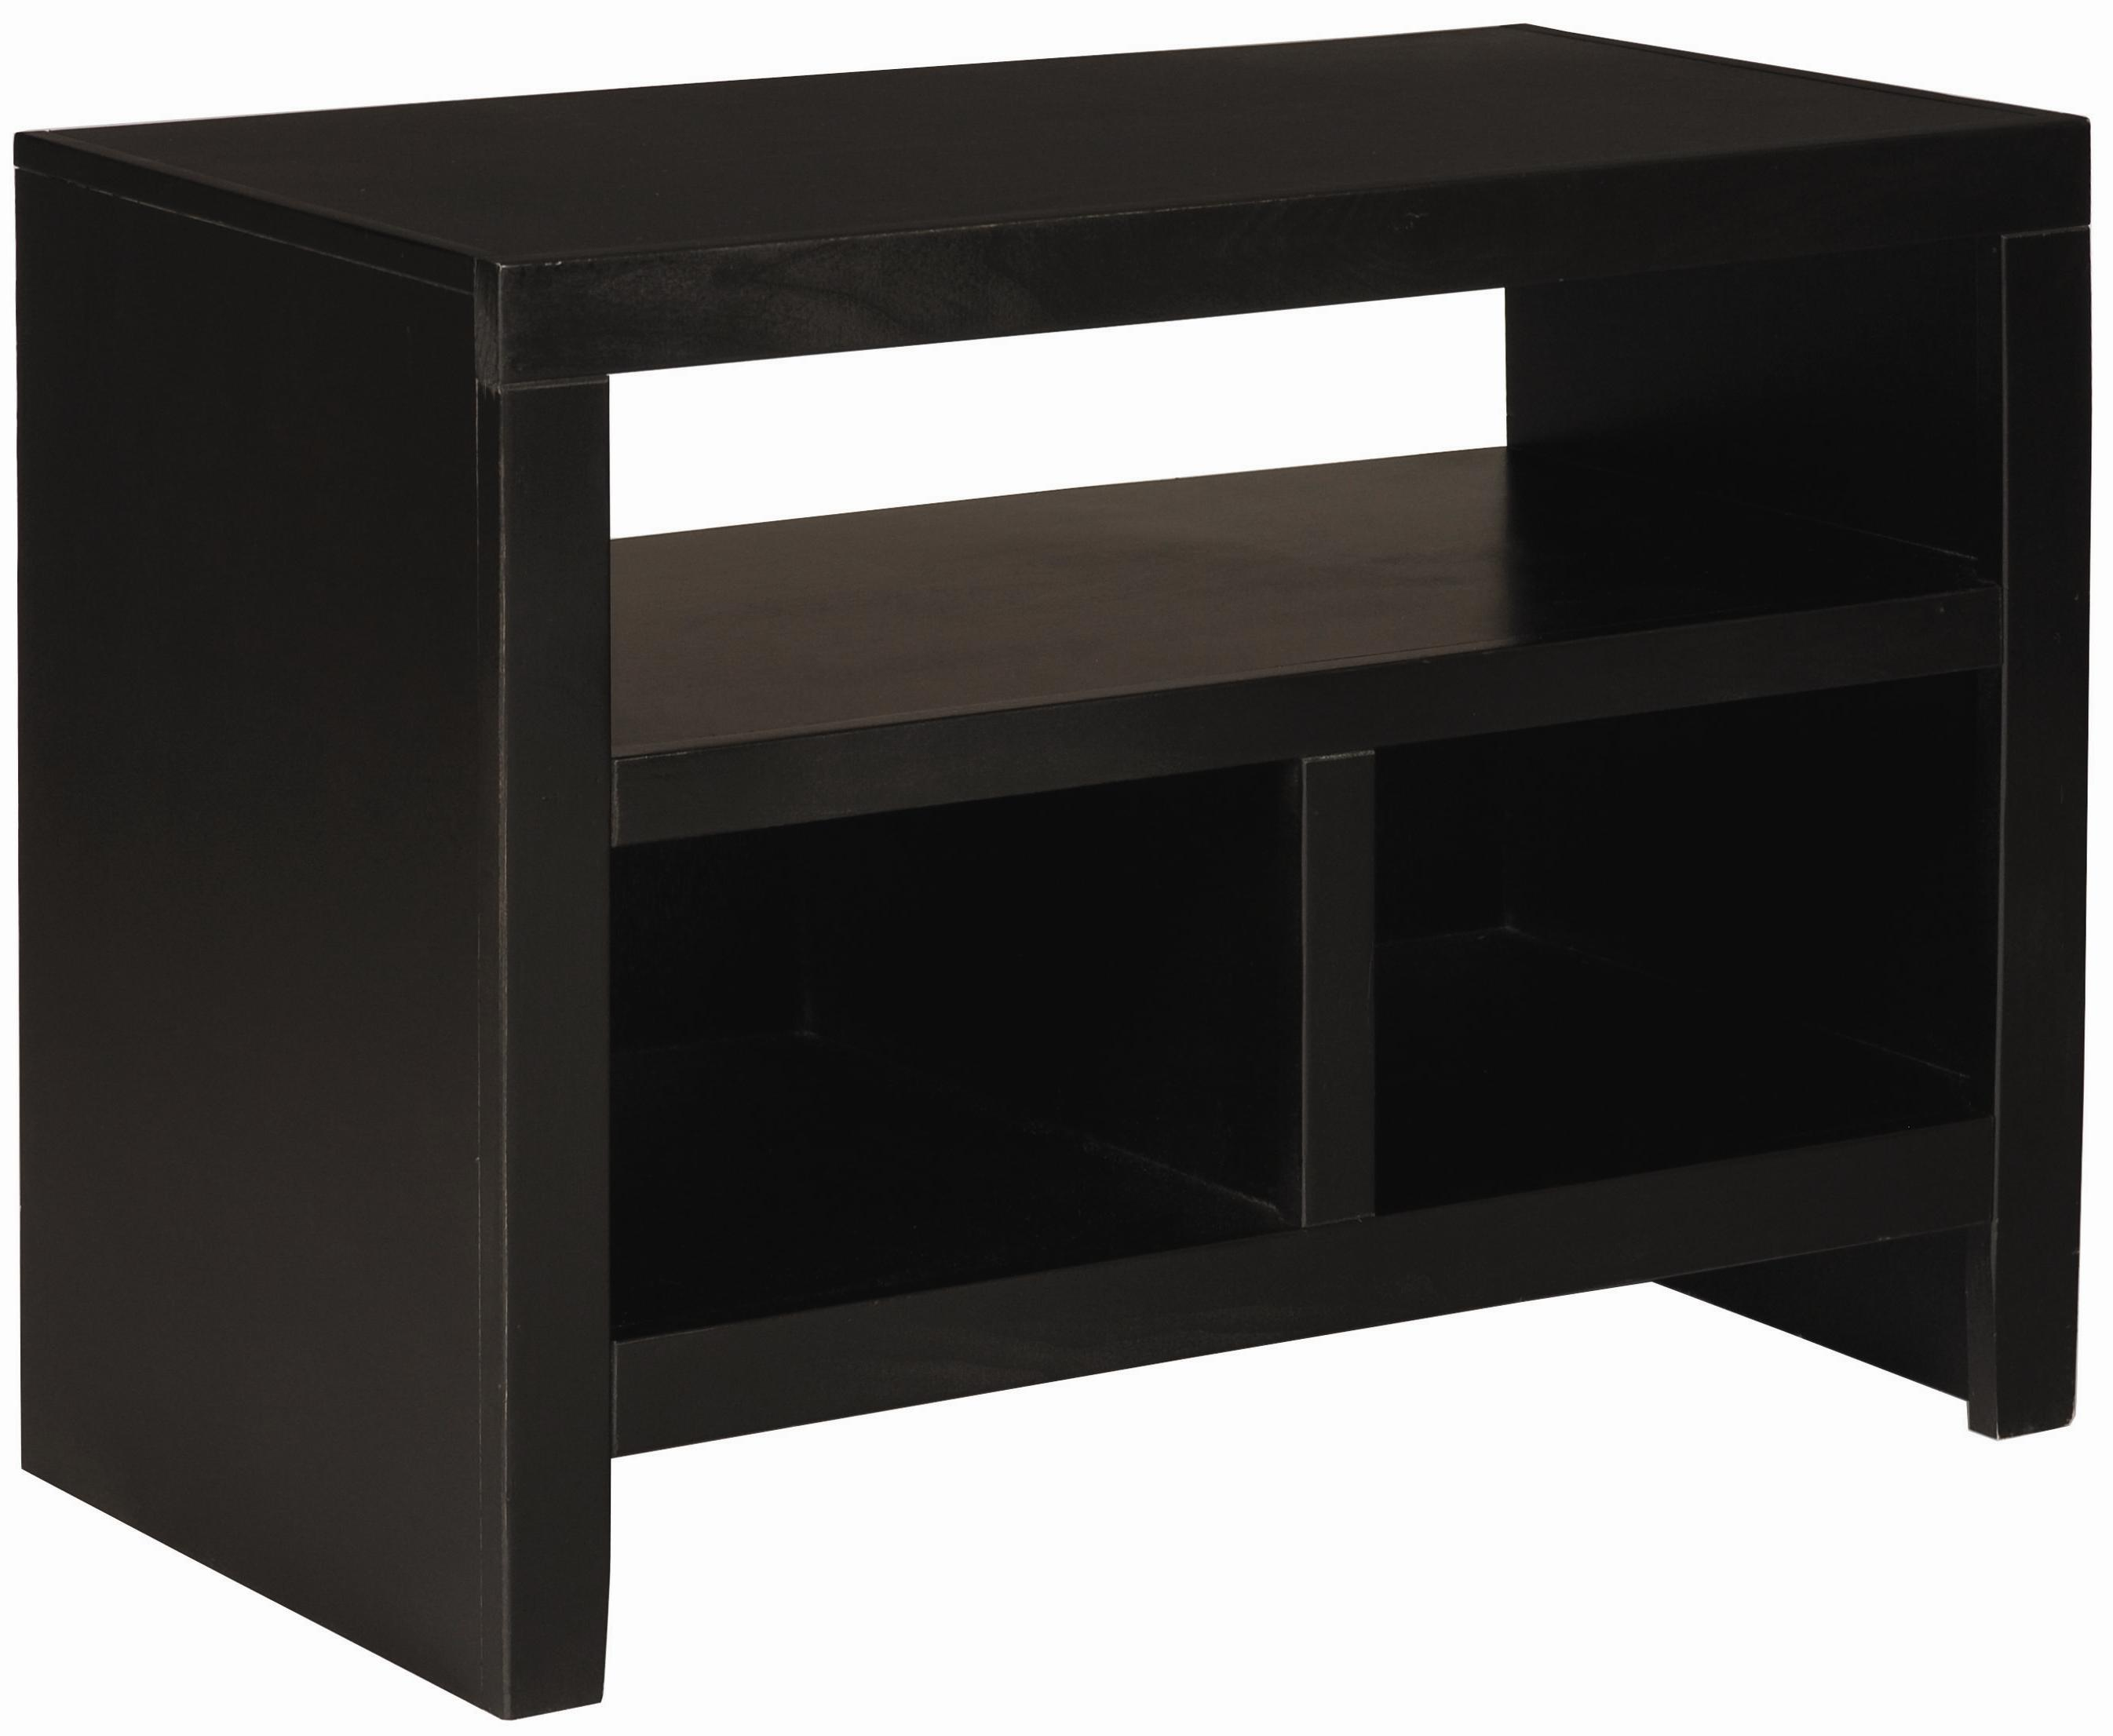 Aspenhome Essentials Lifestyle 32 Inch Console - Item Number: CL1002-BLK